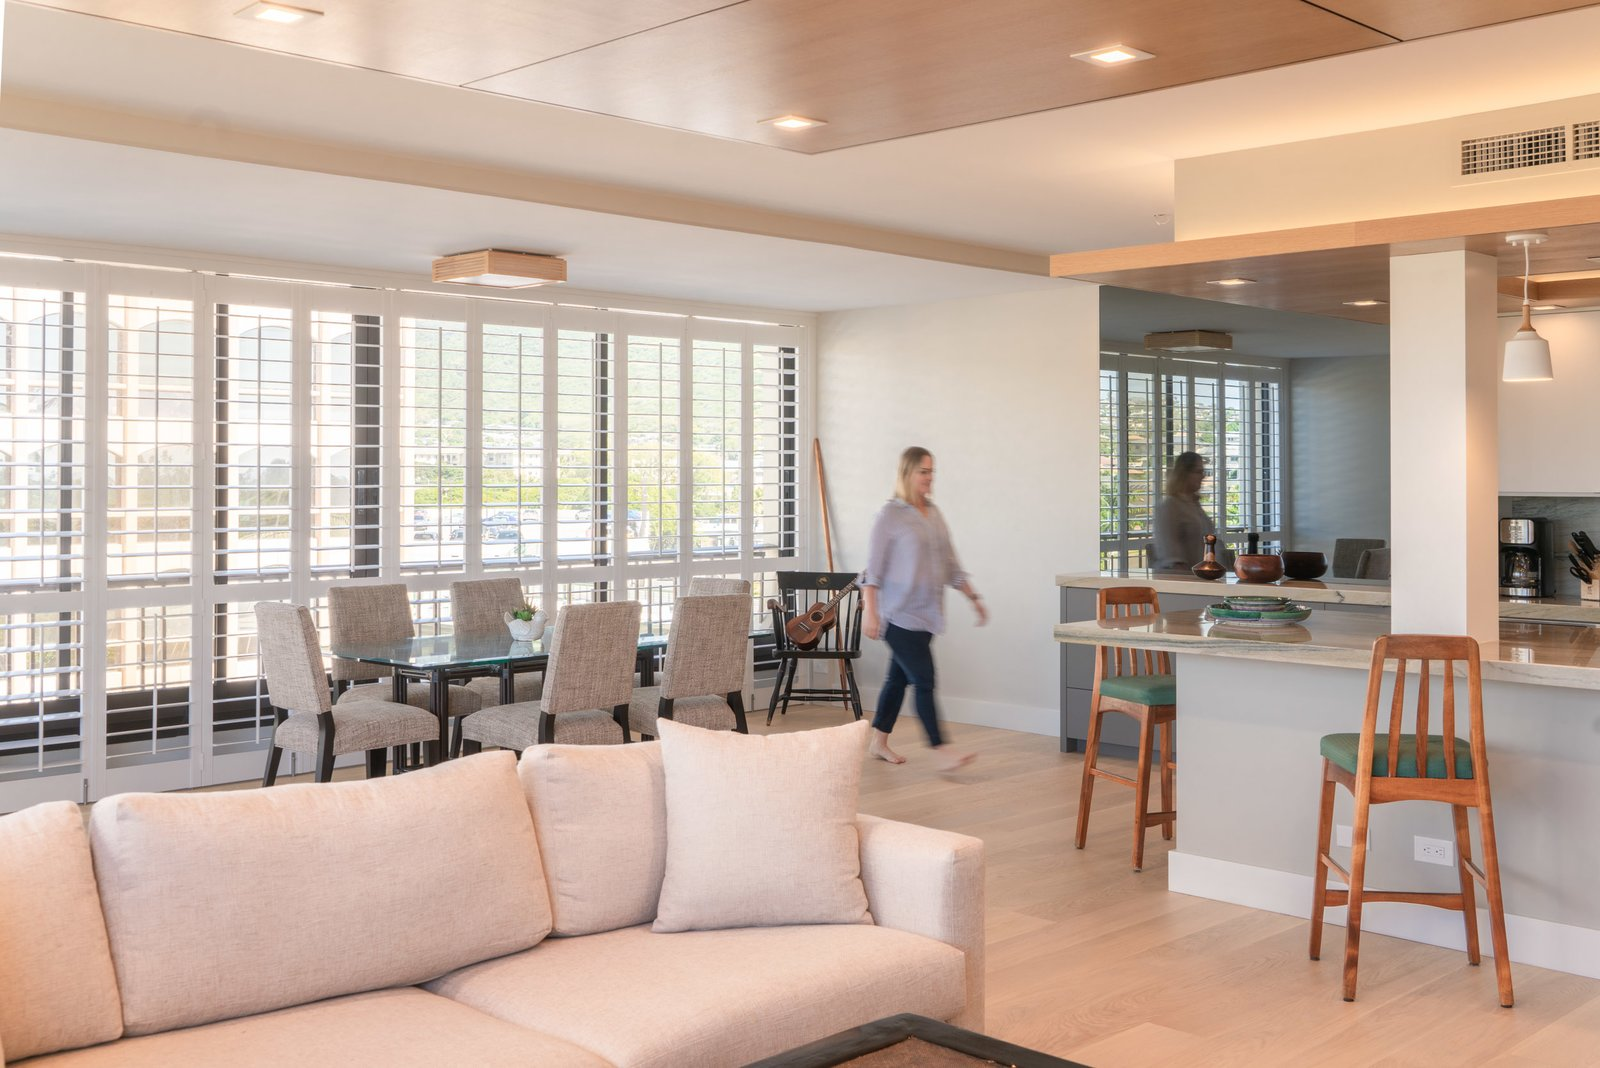 Living Room, Ceiling Lighting, Light Hardwood Floor, Recessed Lighting, Accent Lighting, and Bar  Scott Residence by District Architecture + Design